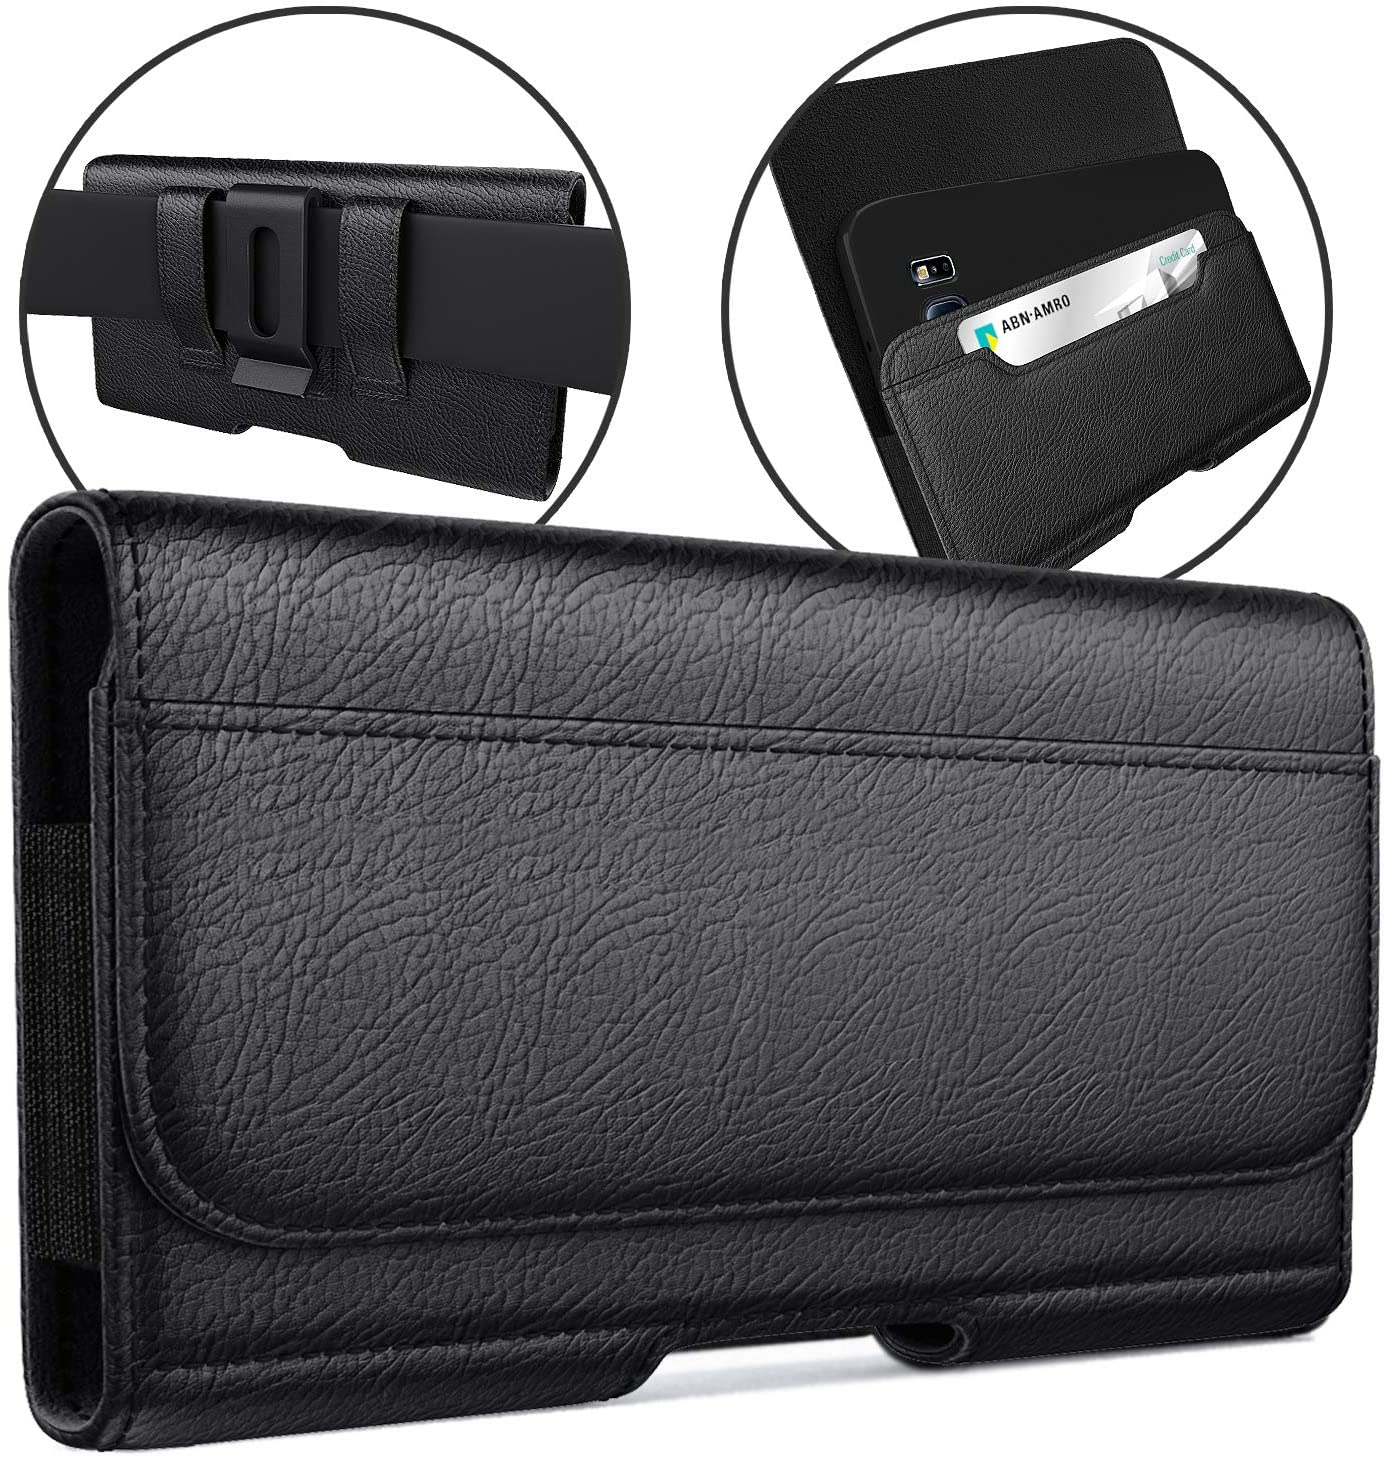 Meilib Phone Belt Holster Designed for iPhone 12 Pro Max/11 Pro Max/XS Max/8+ Plus/7+ Plus/ 6s+ Plus Cell Phone Belt Case with Belt Clip ID Card Holder Pouch Cover Fits Phone with Other Case on-Black